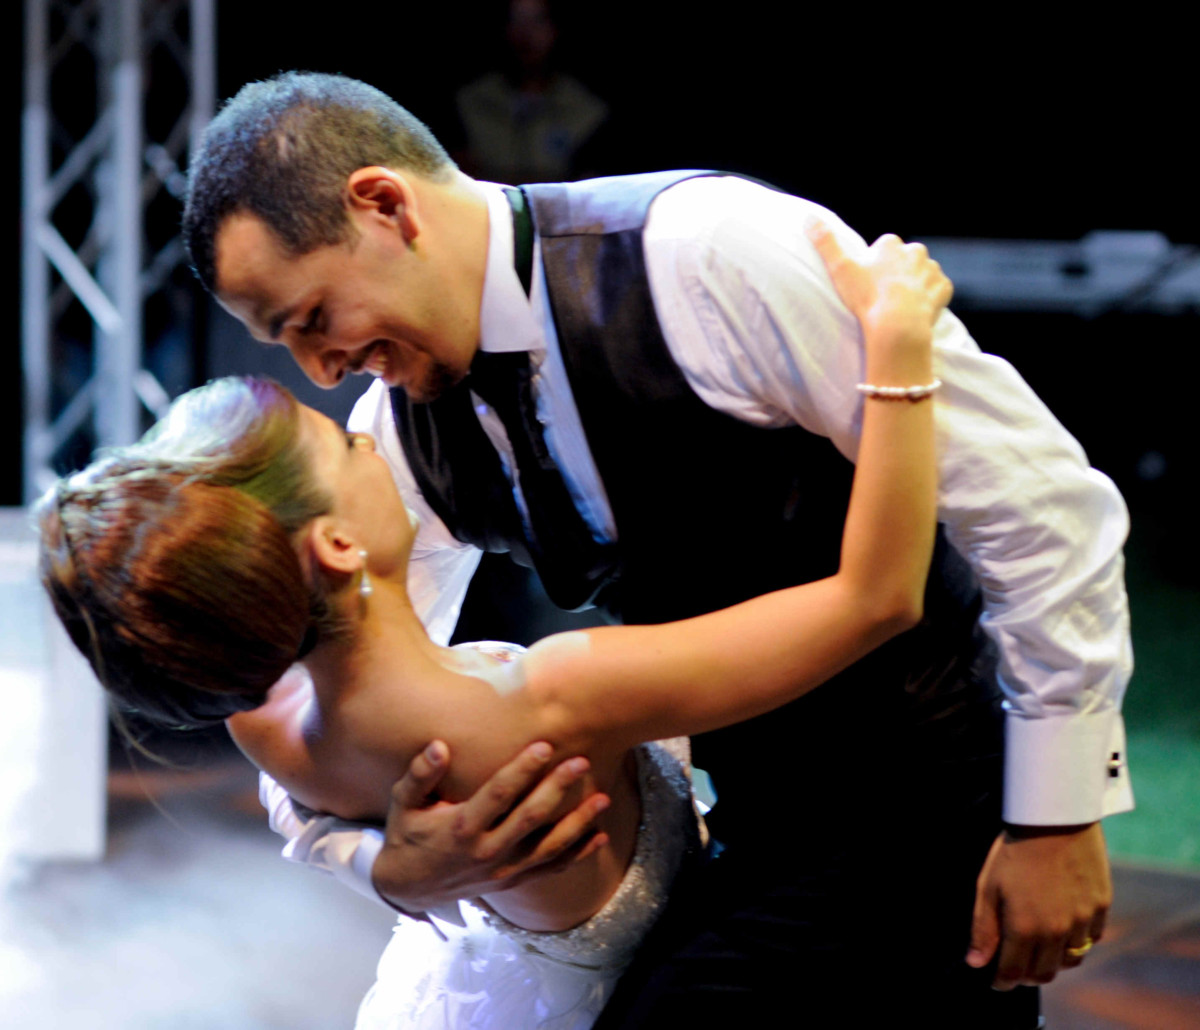 Access Ballroom Dance School Wedding Lessons Dance Package in Toronto News  wedding dance lessons wedding dance classes wedding dance choreography wedding dance Wedding waltz Toronto the beaches tango samba salsa rumba private wedding dance lessons meregue latin kizomba foxtrot first dance Danforth Village dance lessons dance courses dance chacha ballroom bachata   Access Ballroom Dance School Wedding Lessons Dance Package in Toronto News  wedding dance lessons wedding dance classes wedding dance choreography wedding dance Wedding waltz Toronto the beaches tango samba salsa rumba private wedding dance lessons meregue latin kizomba foxtrot first dance Danforth Village dance lessons dance courses dance chacha ballroom bachata   Access Ballroom Dance School Wedding Lessons Dance Package in Toronto News  wedding dance lessons wedding dance classes wedding dance choreography wedding dance Wedding waltz Toronto the beaches tango samba salsa rumba private wedding dance lessons meregue latin kizomba foxtrot first dance Danforth Village dance lessons dance courses dance chacha ballroom bachata   Access Ballroom Dance School Wedding Lessons Dance Package in Toronto News  wedding dance lessons wedding dance classes wedding dance choreography wedding dance Wedding waltz Toronto the beaches tango samba salsa rumba private wedding dance lessons meregue latin kizomba foxtrot first dance Danforth Village dance lessons dance courses dance chacha ballroom bachata